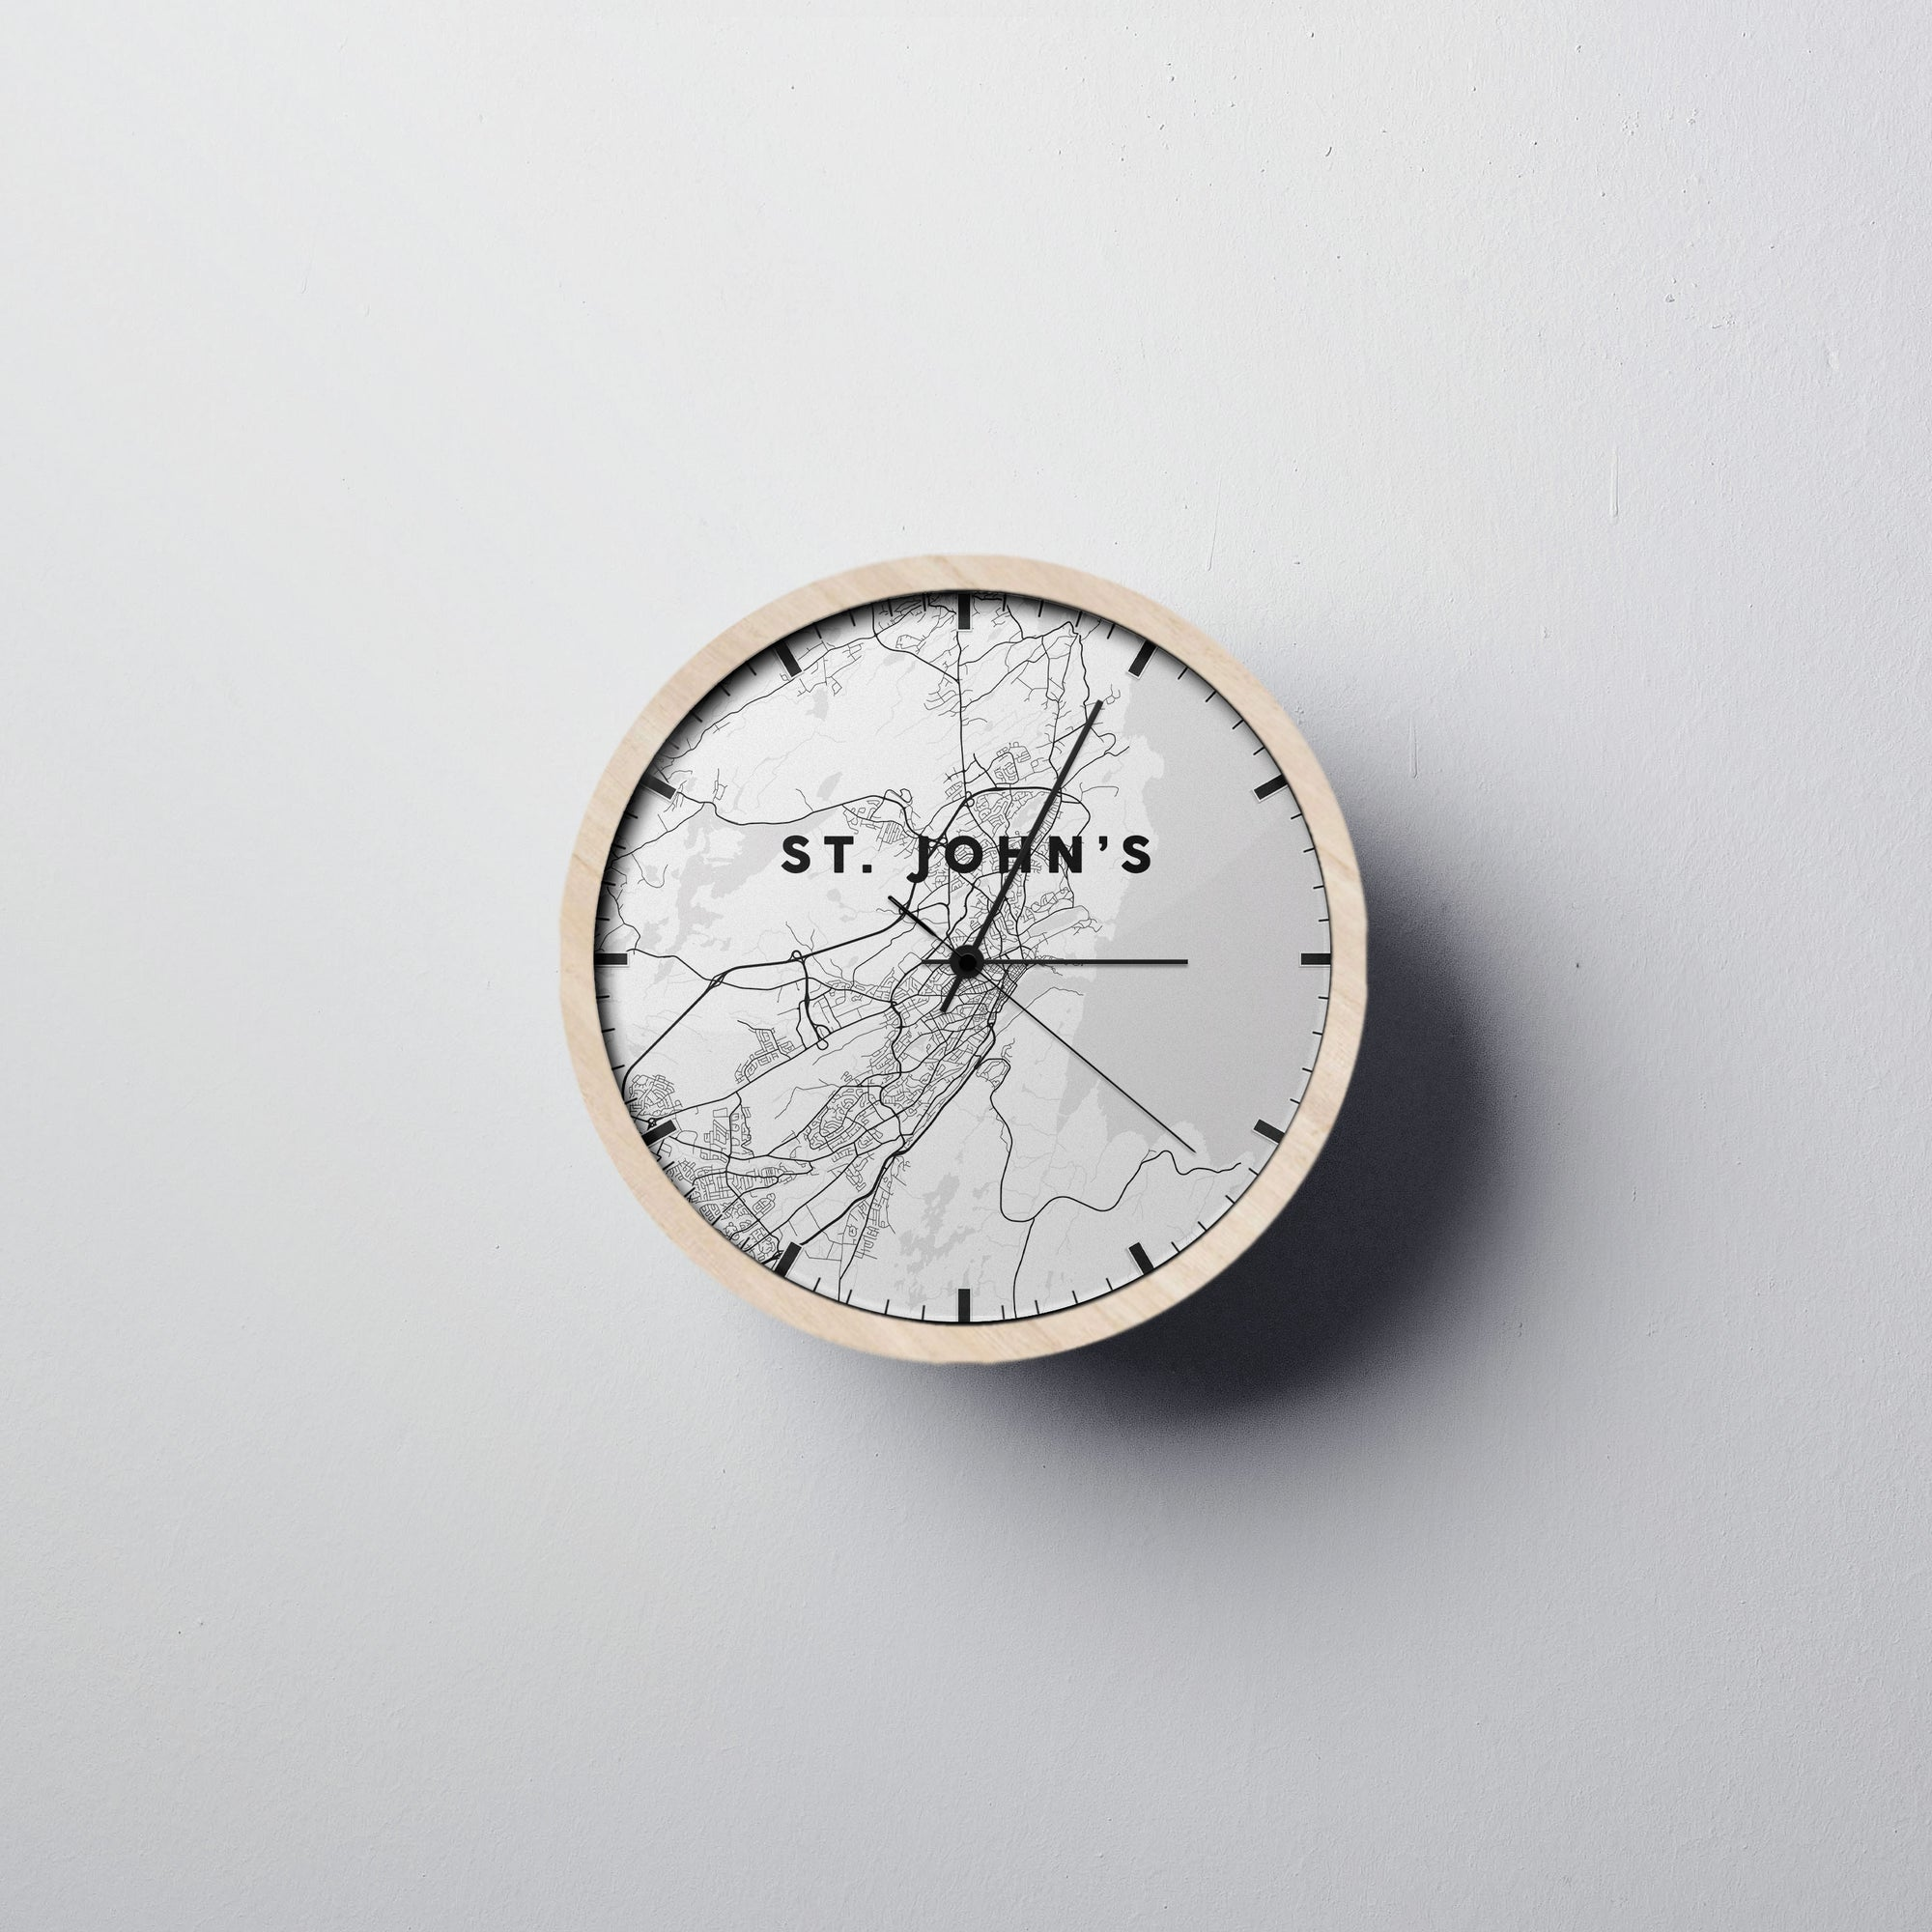 St. John's Wall Clock